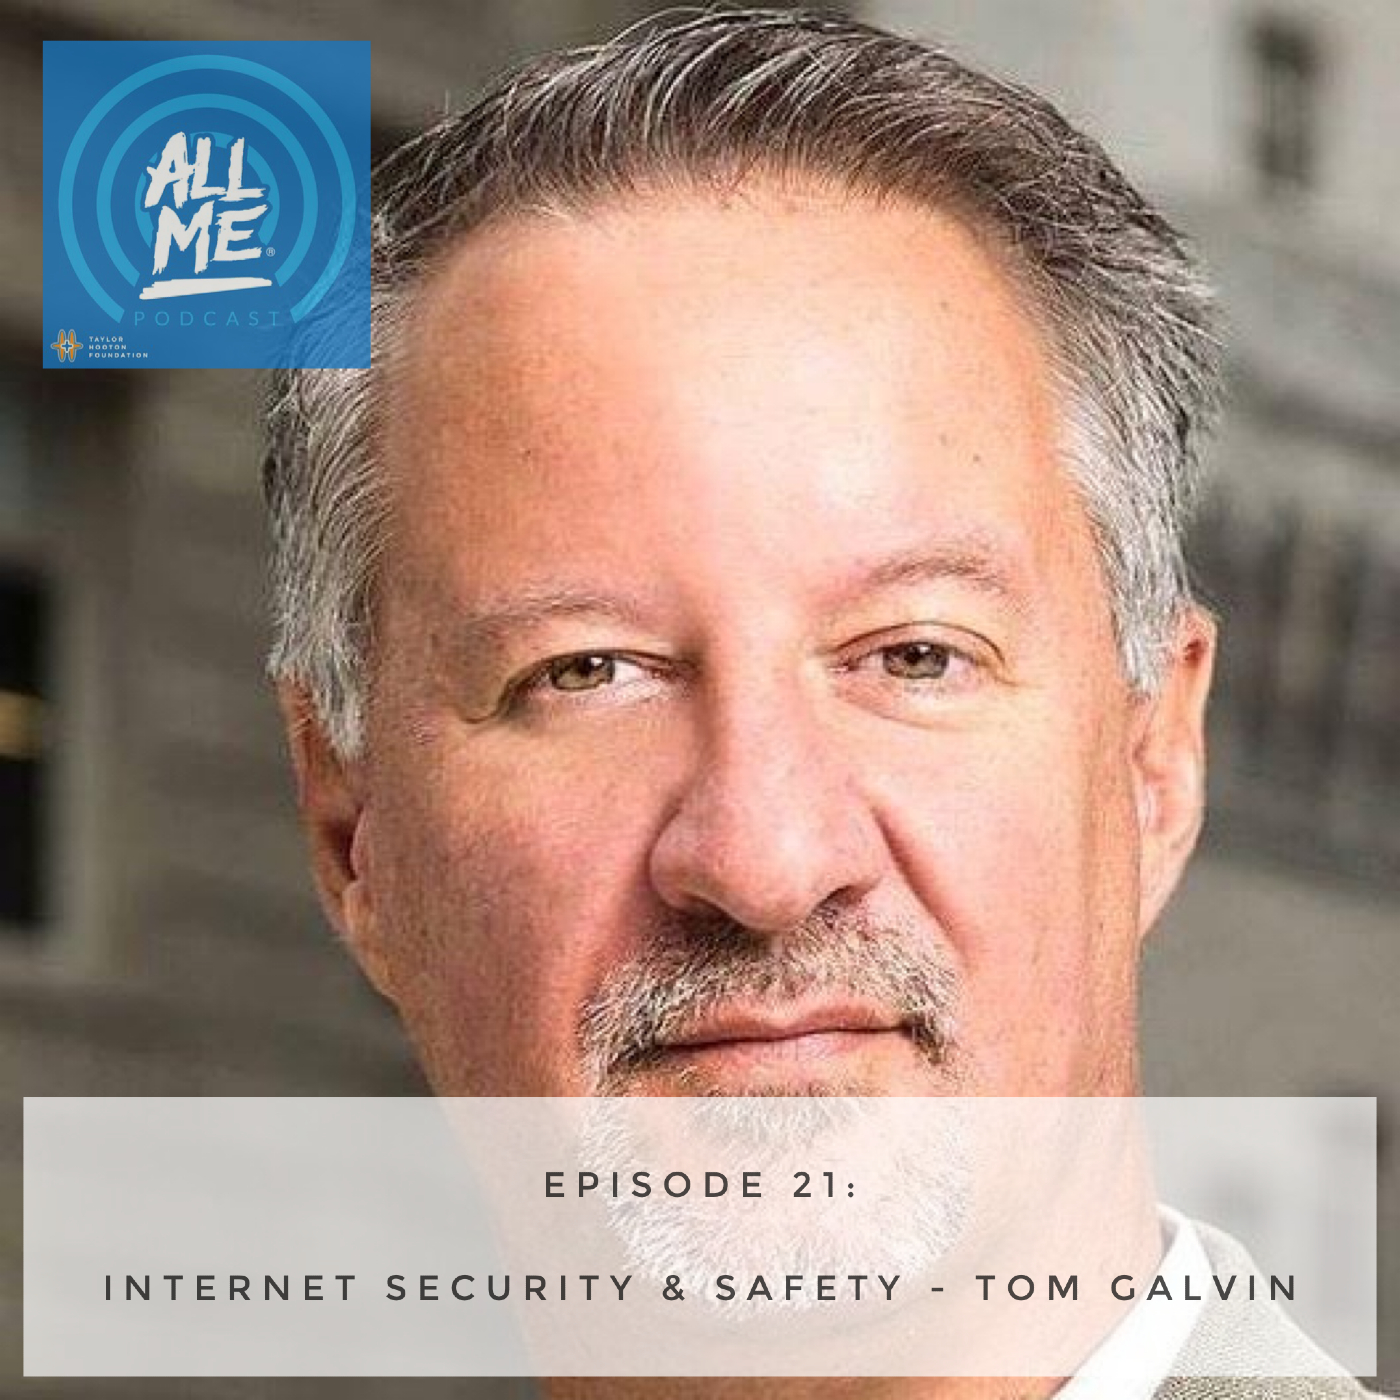 Episode 21: Internet Security and Safety - Tom Galvin